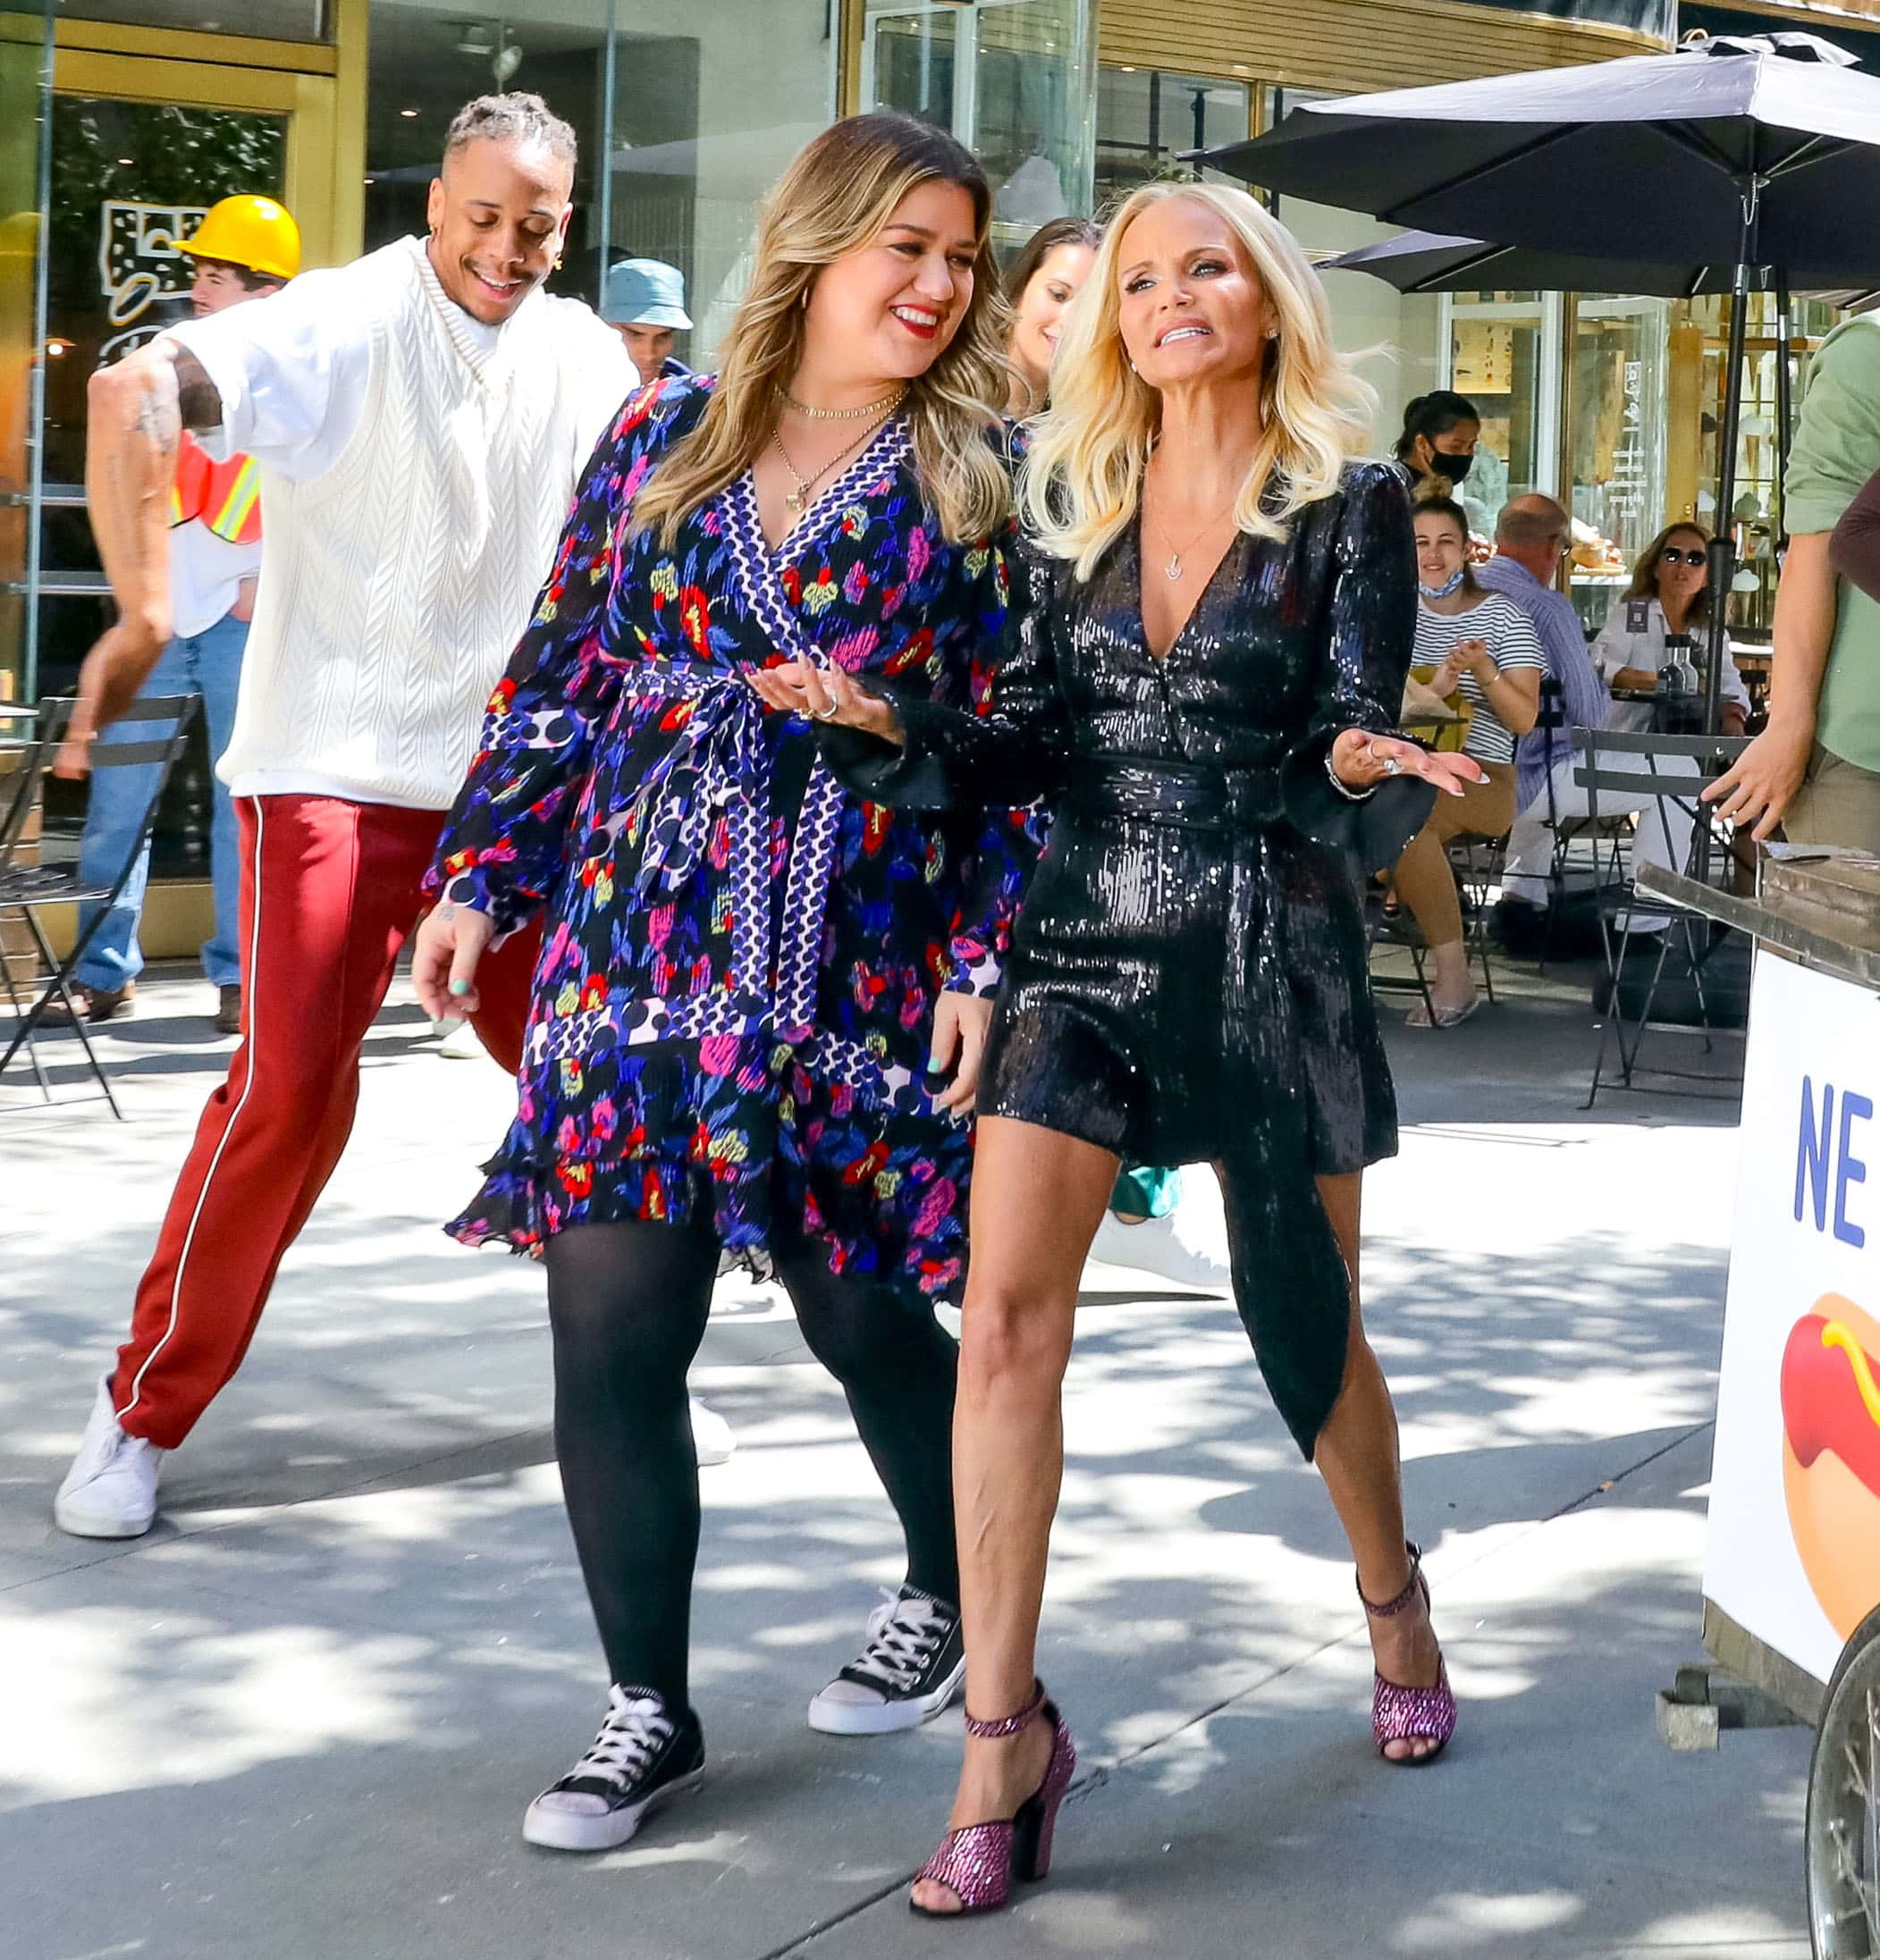 Kelly Clarkson and Kristin Chenoweth are all smiles while in the Columbus Circle subway station in New York City